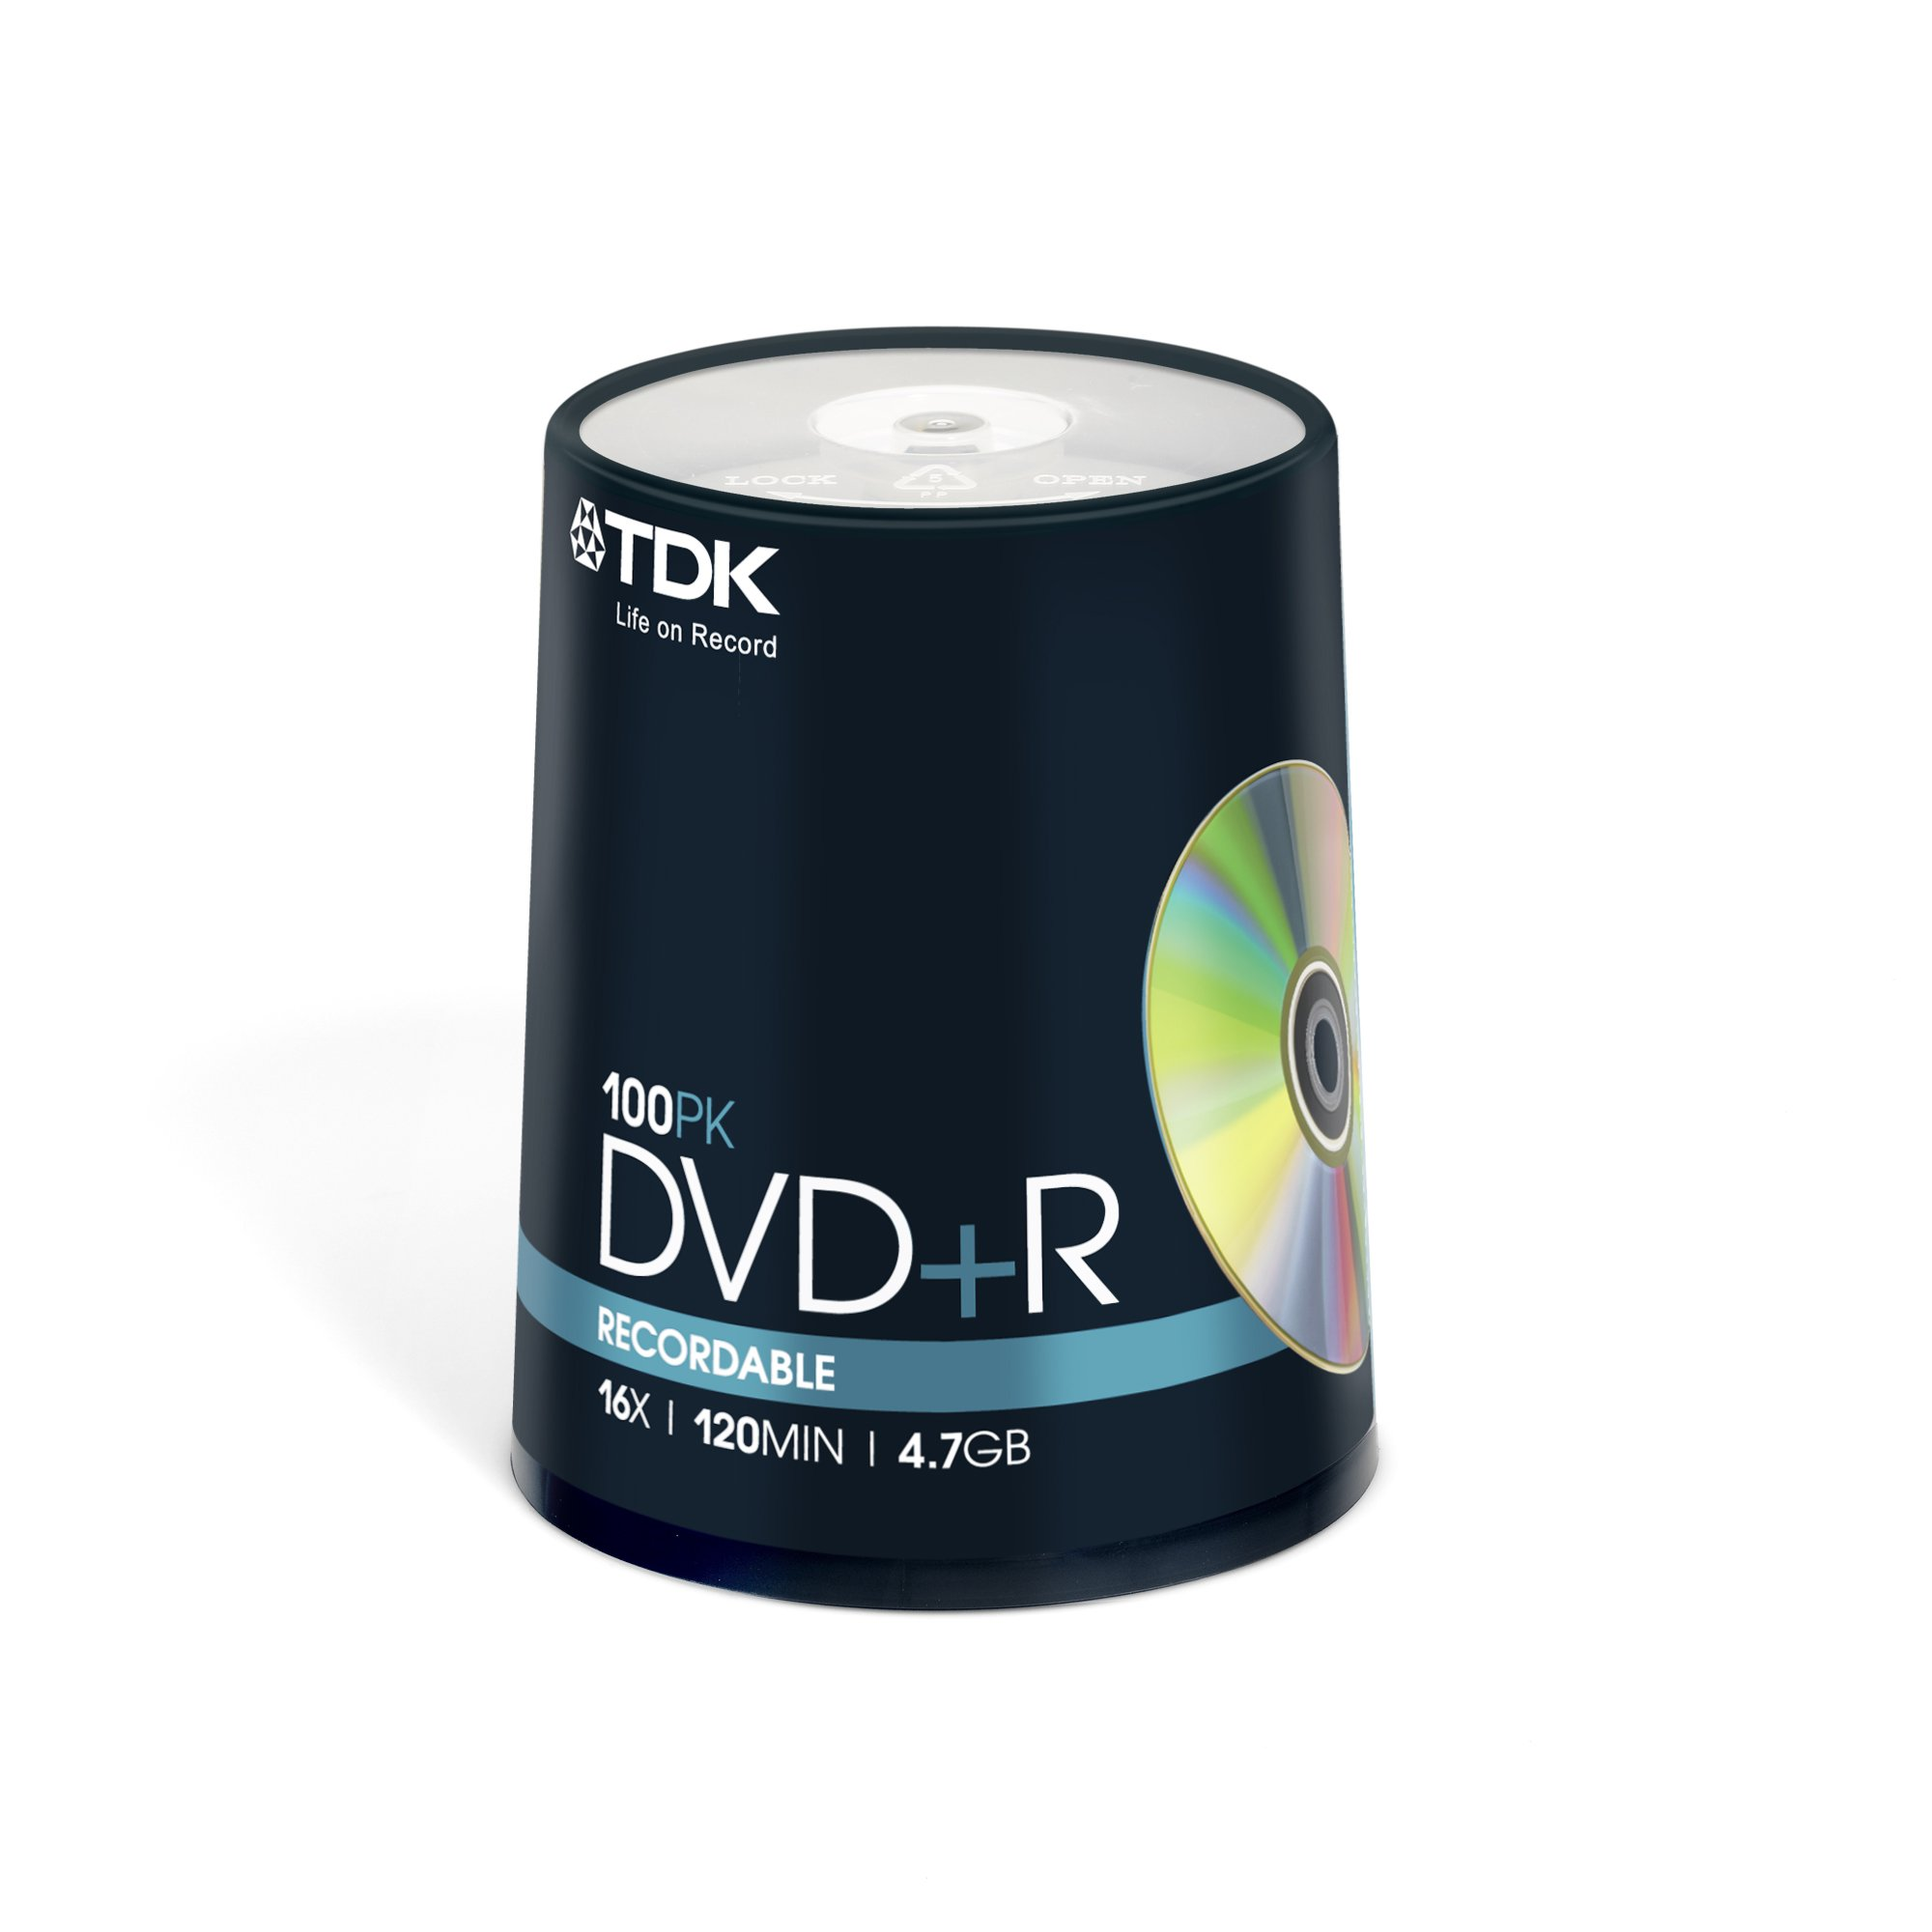 TDK DVD+R 4.7GB 16x Spindle 100 recordable tdk dvdr blank 16 x speed dvd